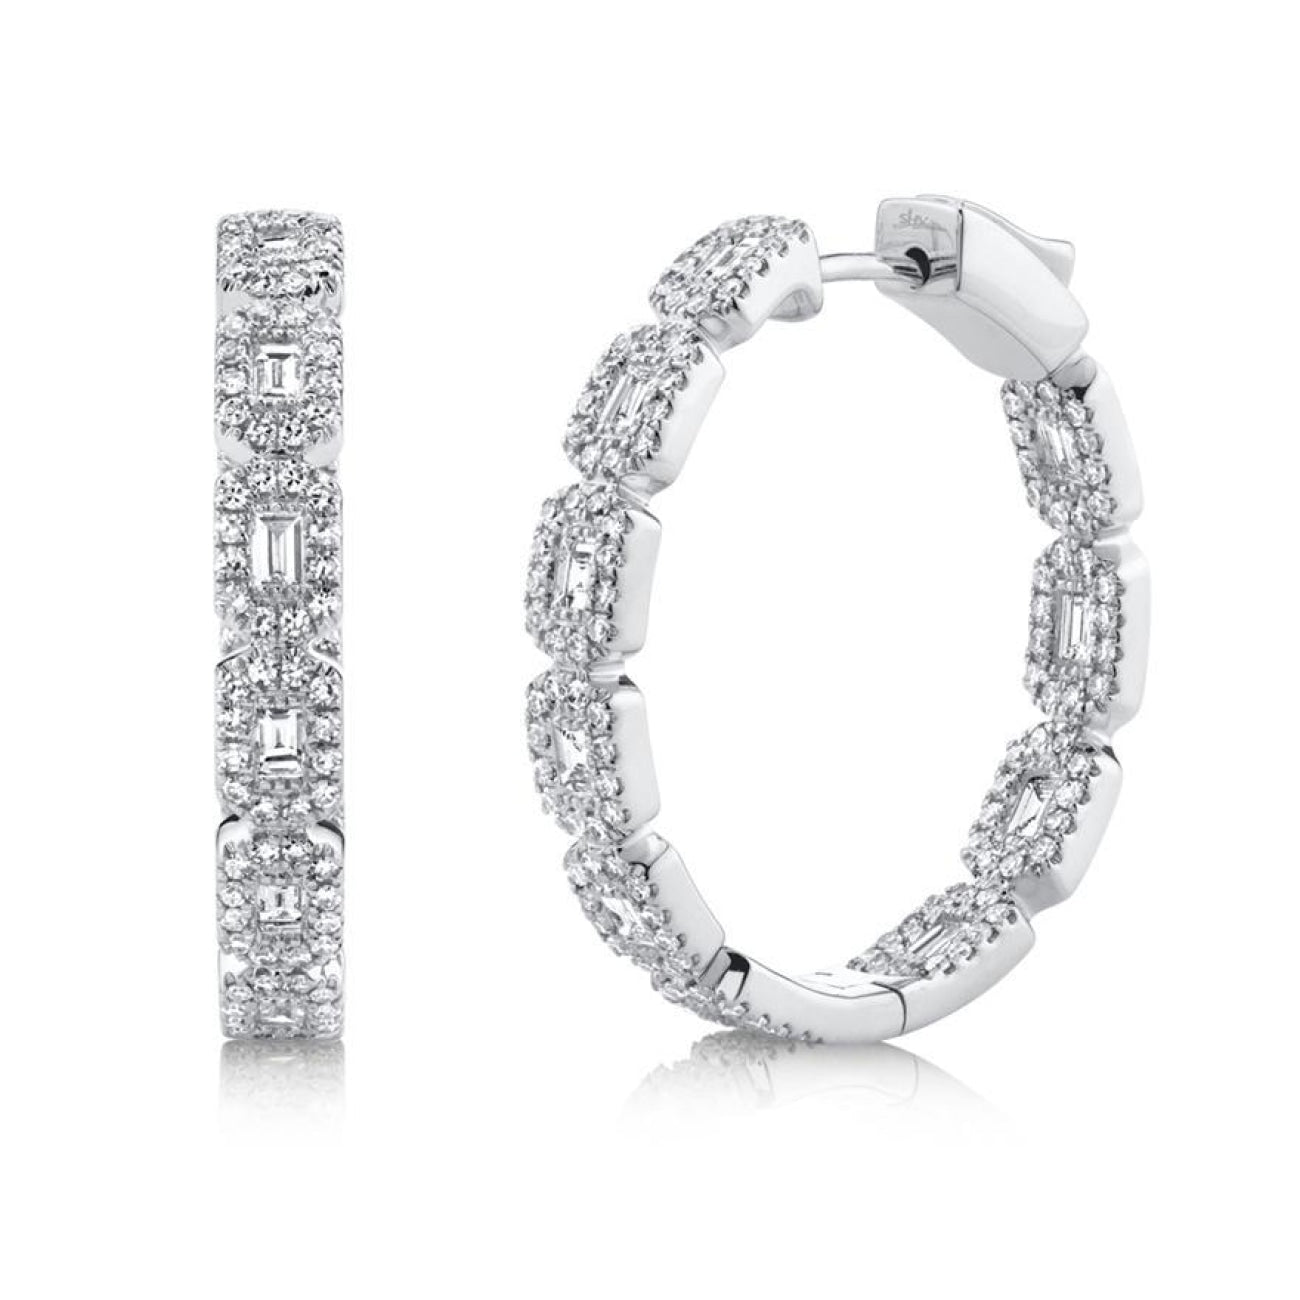 Shy Creation Jewelry - 1.35CT 14K WHITE GOLD DIAMOND BAGUETTE HOOP EARRING | Manfredi Jewels